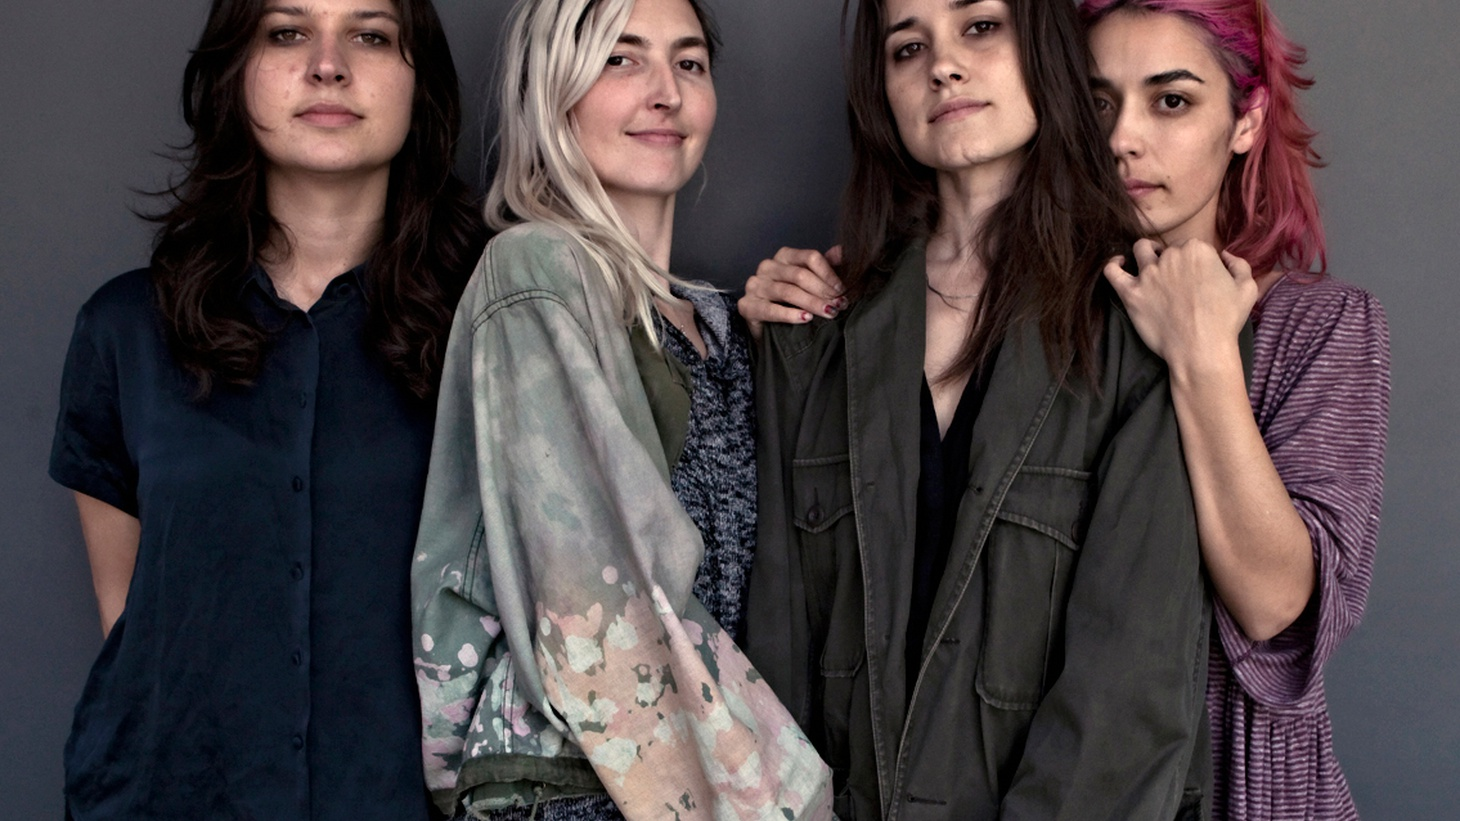 This week's edition of the MBE podcast features two full-length sessions from KCRW's recent favorites: Los Angeles' own Warpaint and Irish singer/songwriter Hozier.